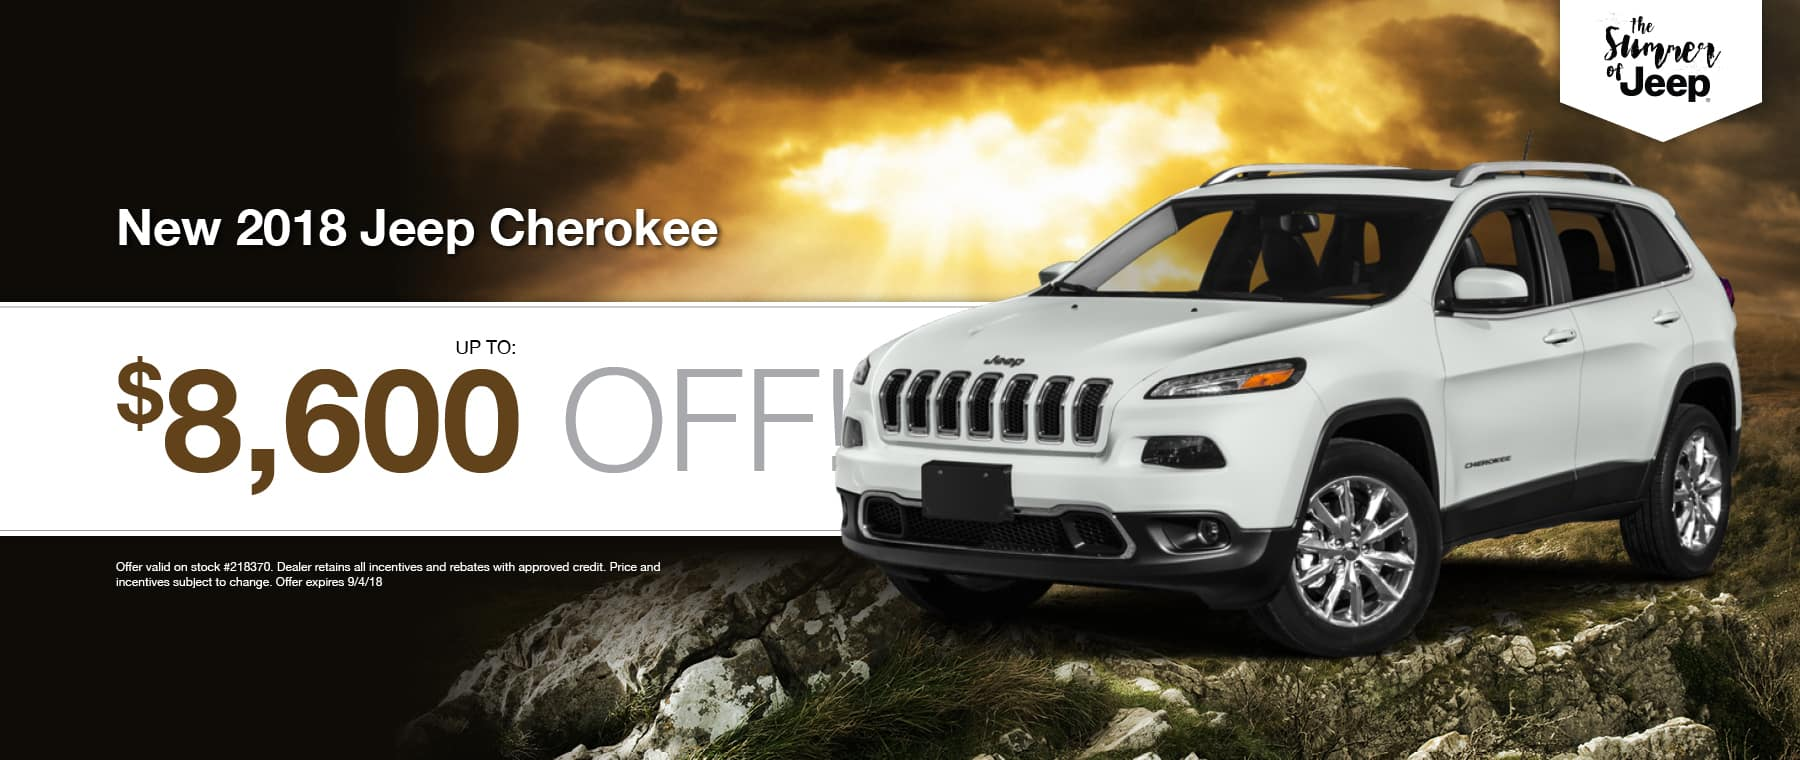 2018 Jeep Cherokee Special at Thomson Jeep in Thomson, GA